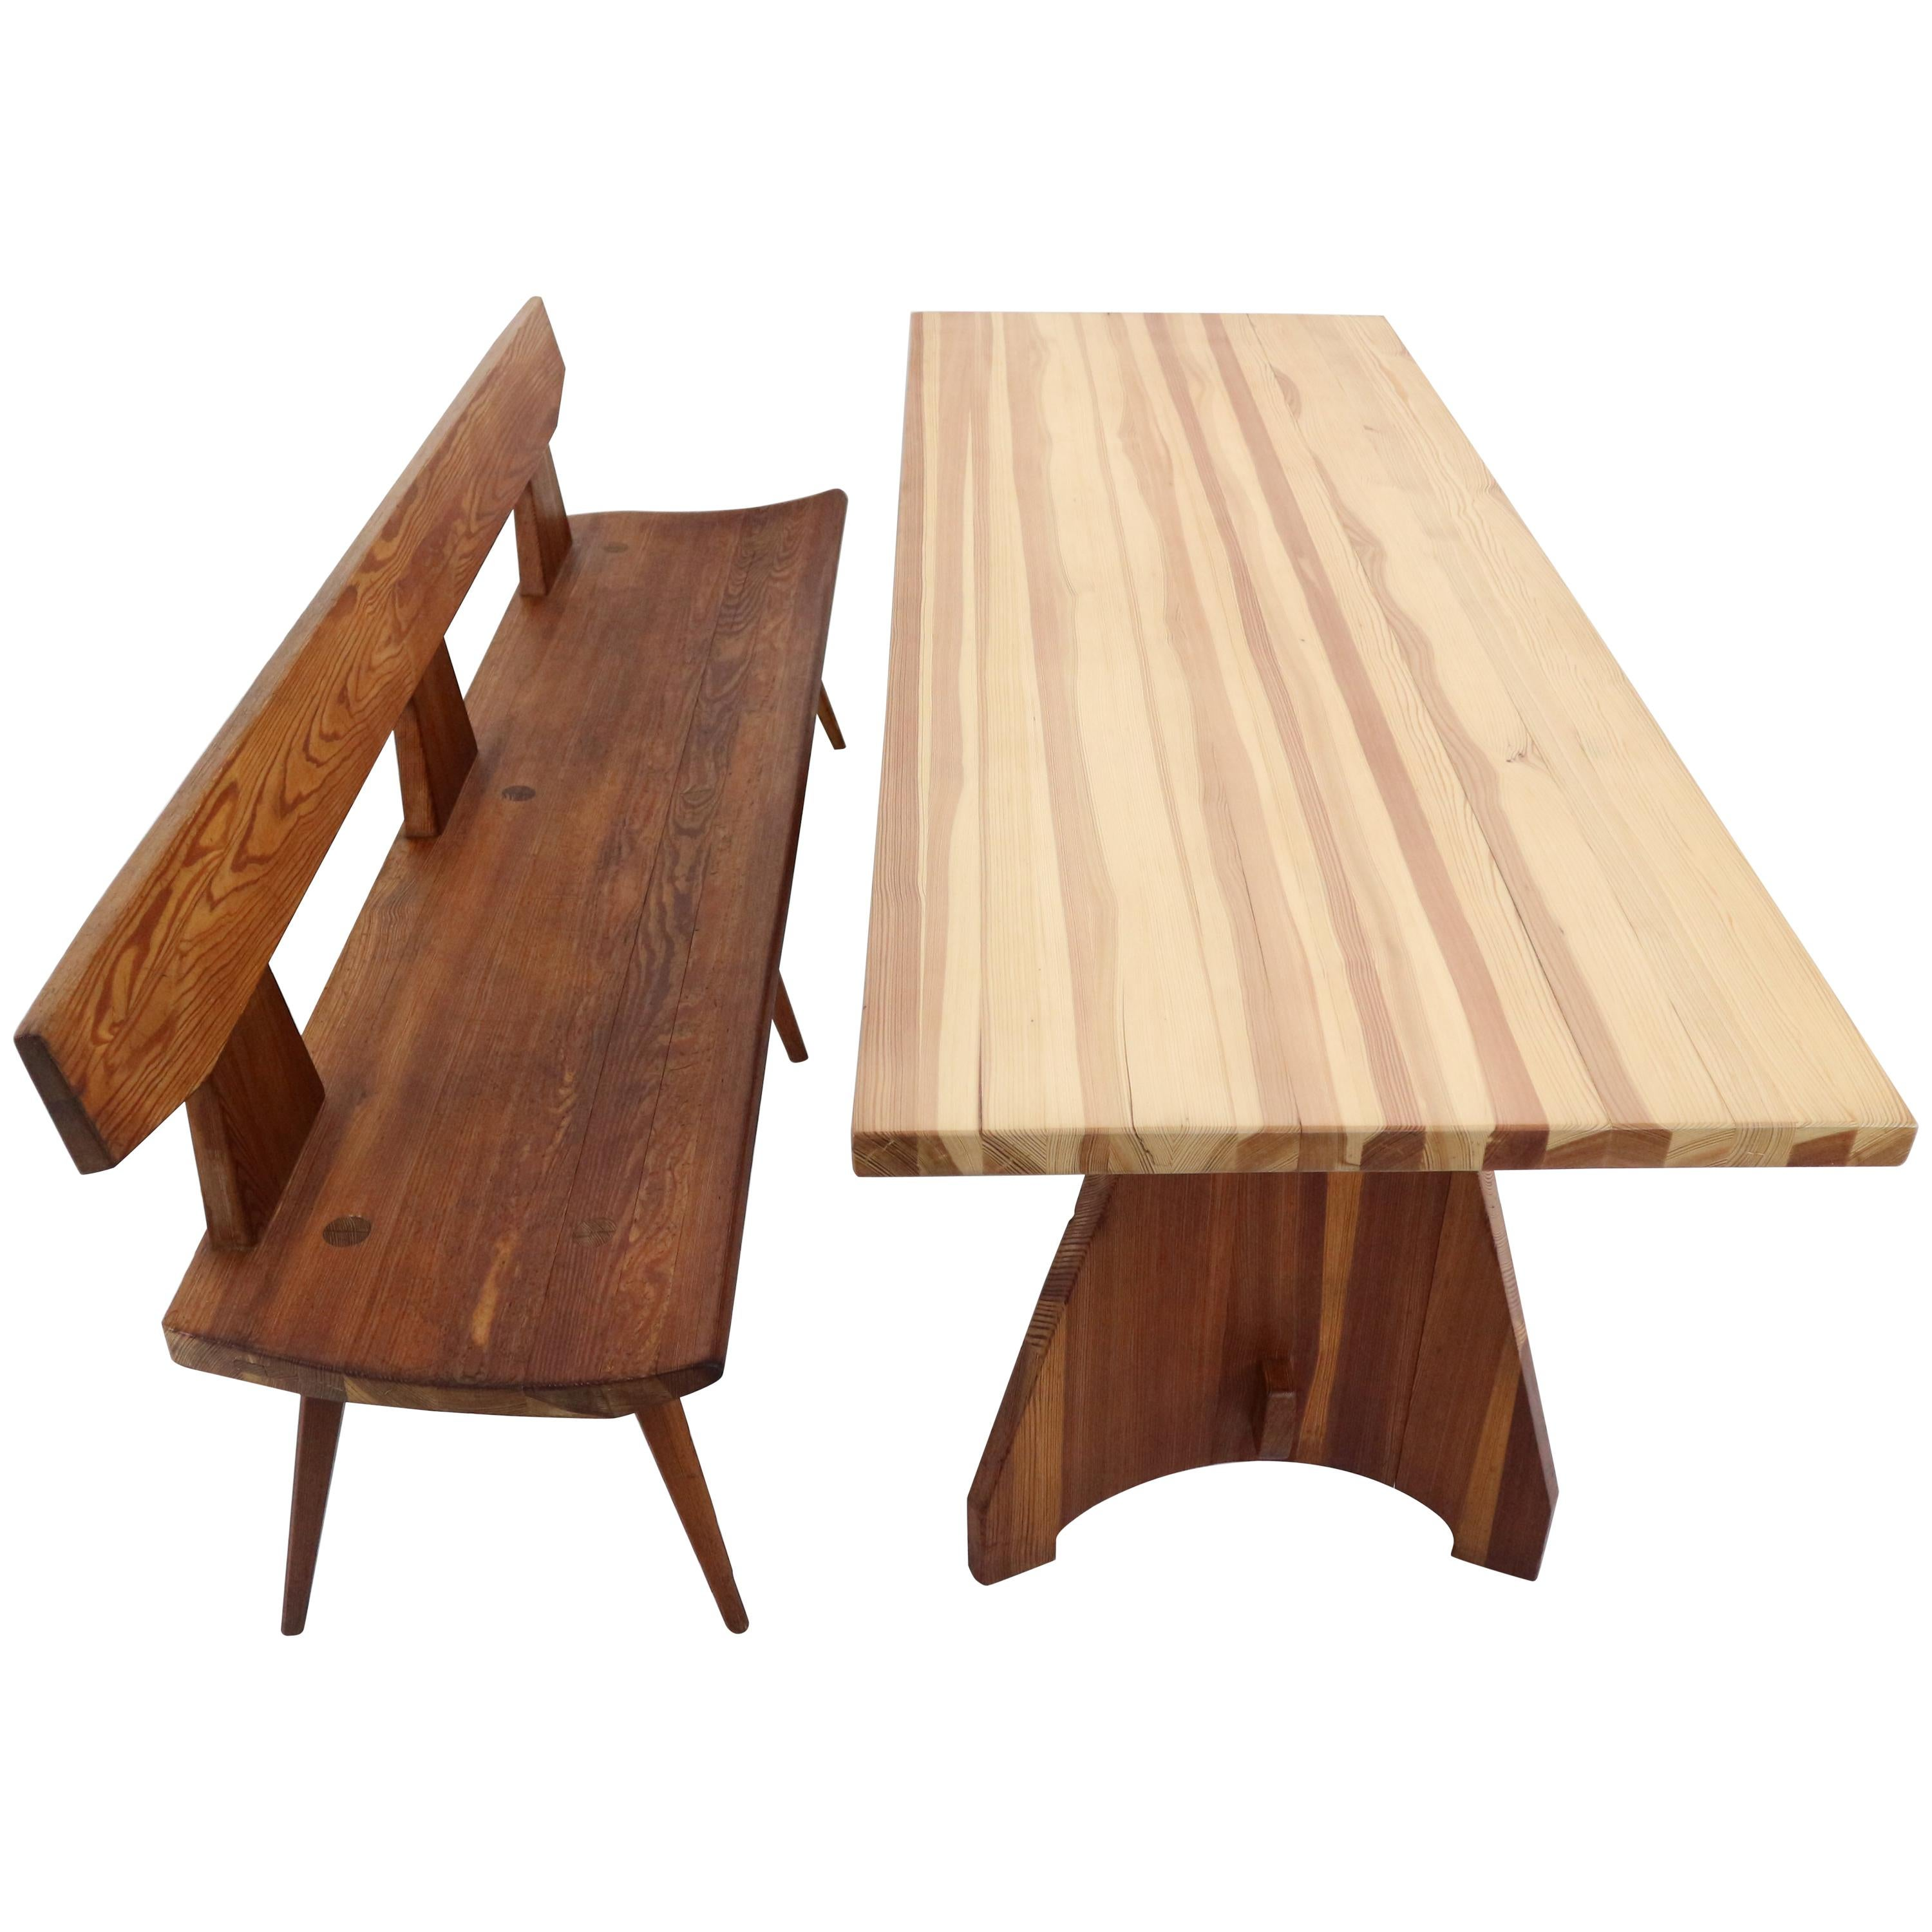 Wooden Bench Table Jacob Kielland Brandt Bench And Table Handcrafted For Christiansen 1960s